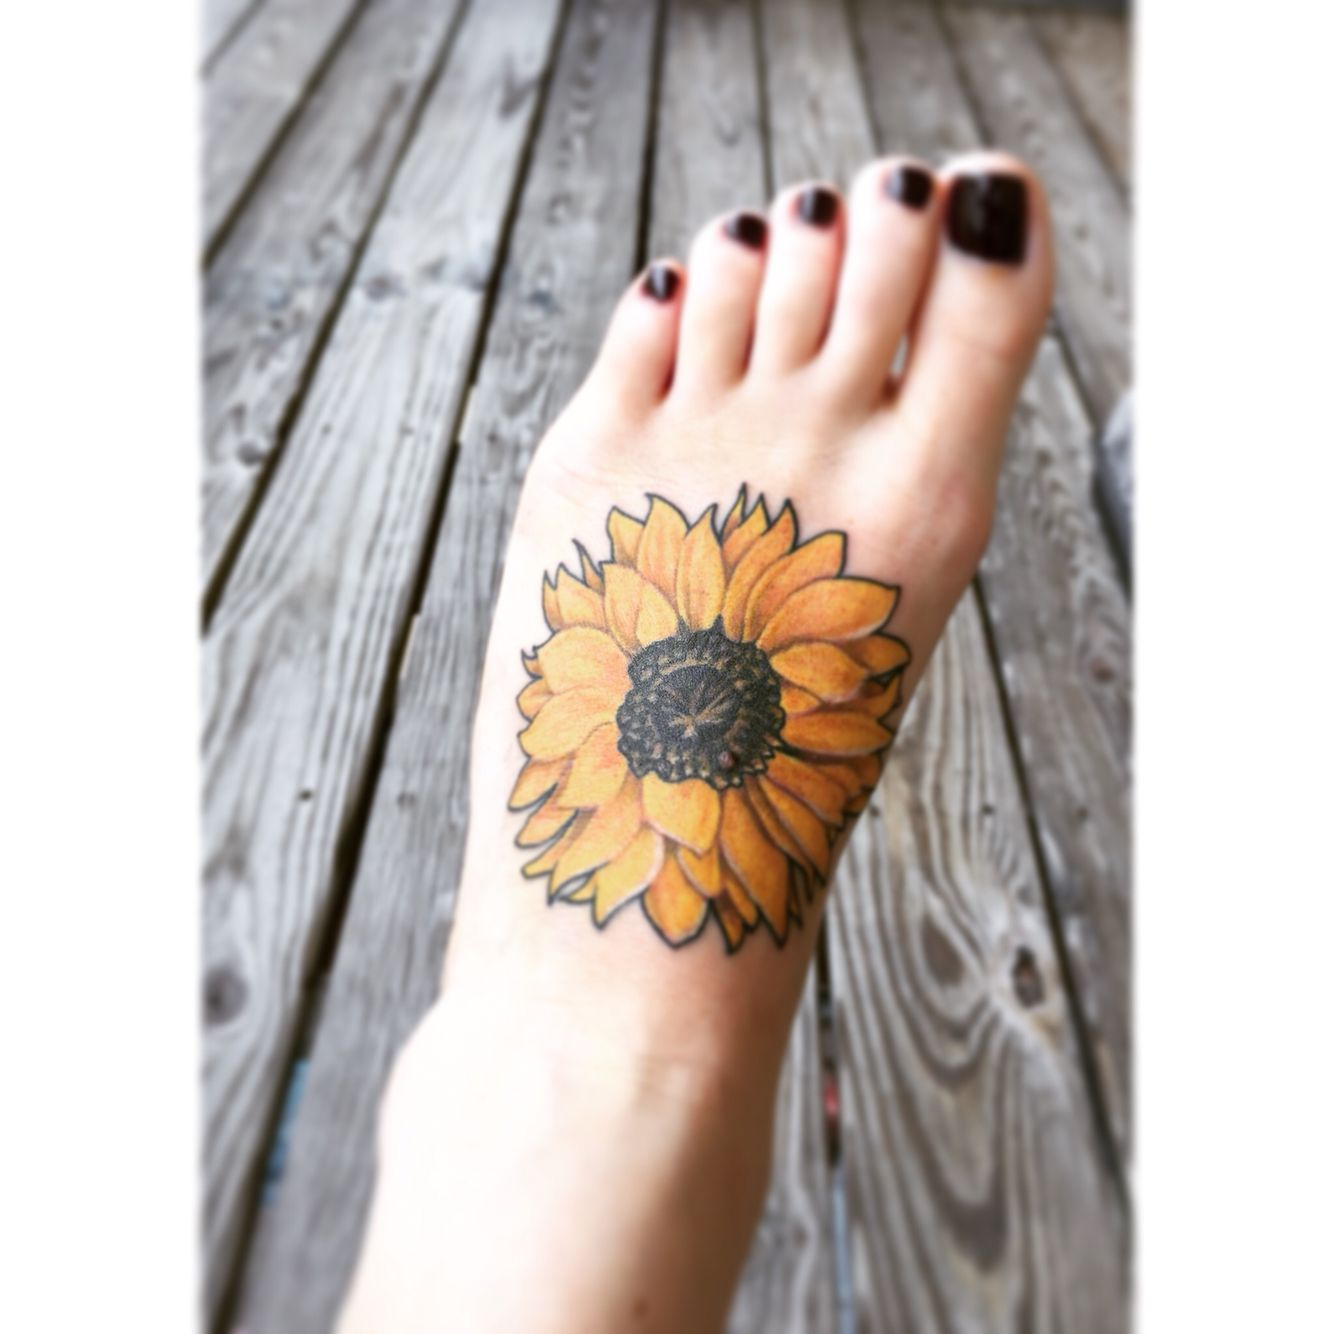 40 vibrant and inspirational sunflower tattoos that will inspire